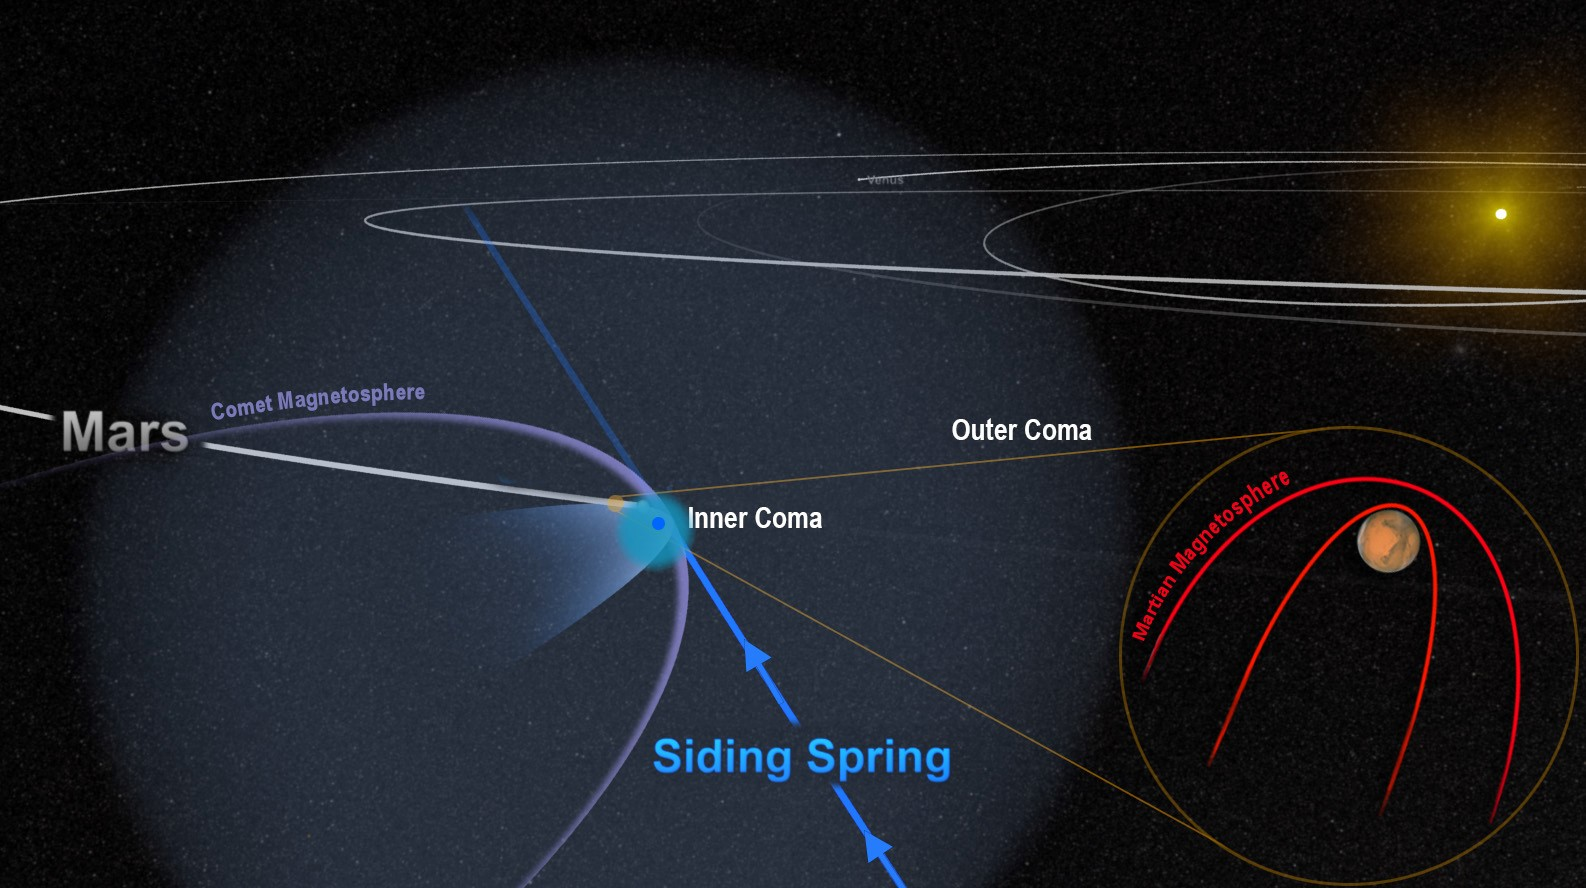 Chaotic Comet Flyby Blew Away Some of Mars' Atmosphere